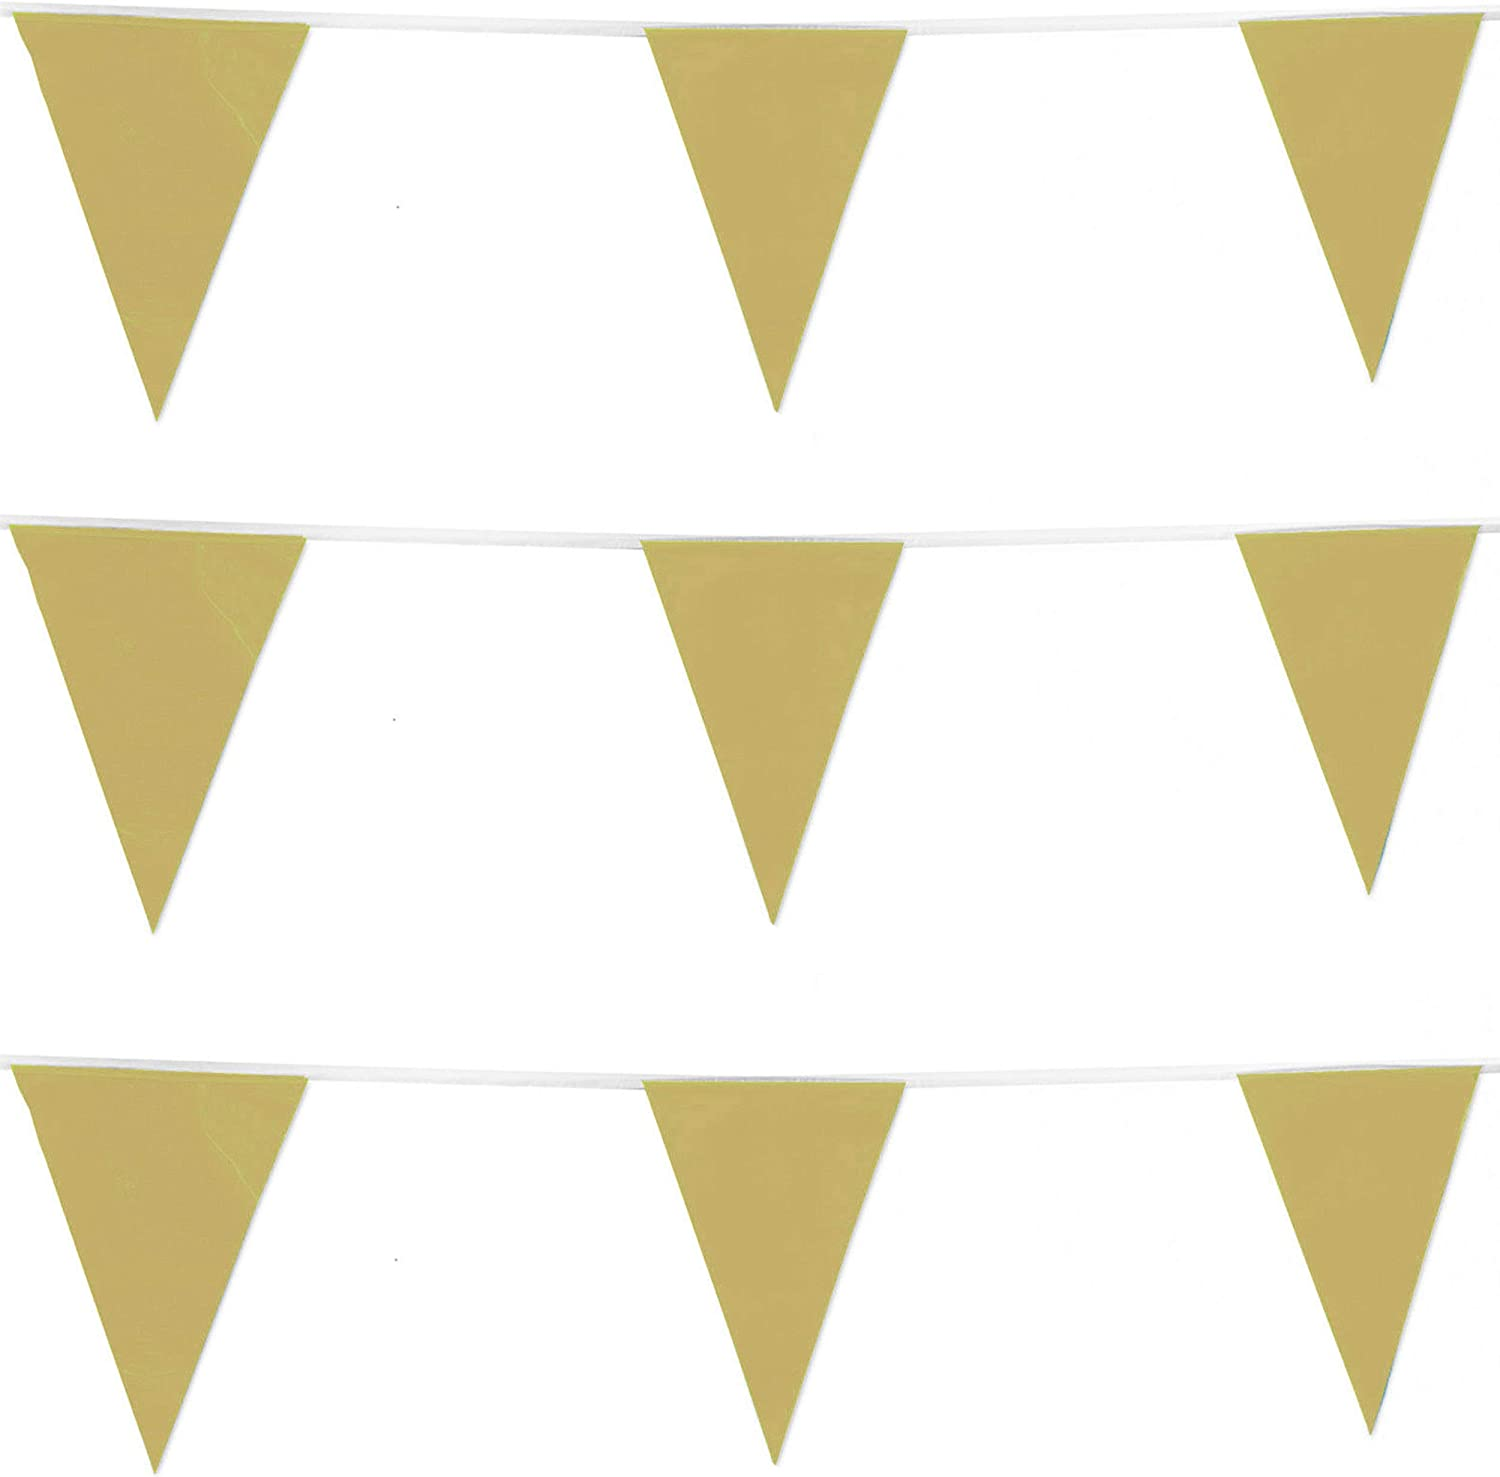 10m COLOUR BUNTING FLAGS PENNANTS PARTY DECORATIONS PARTIES FLAG WEDDING COLOURS